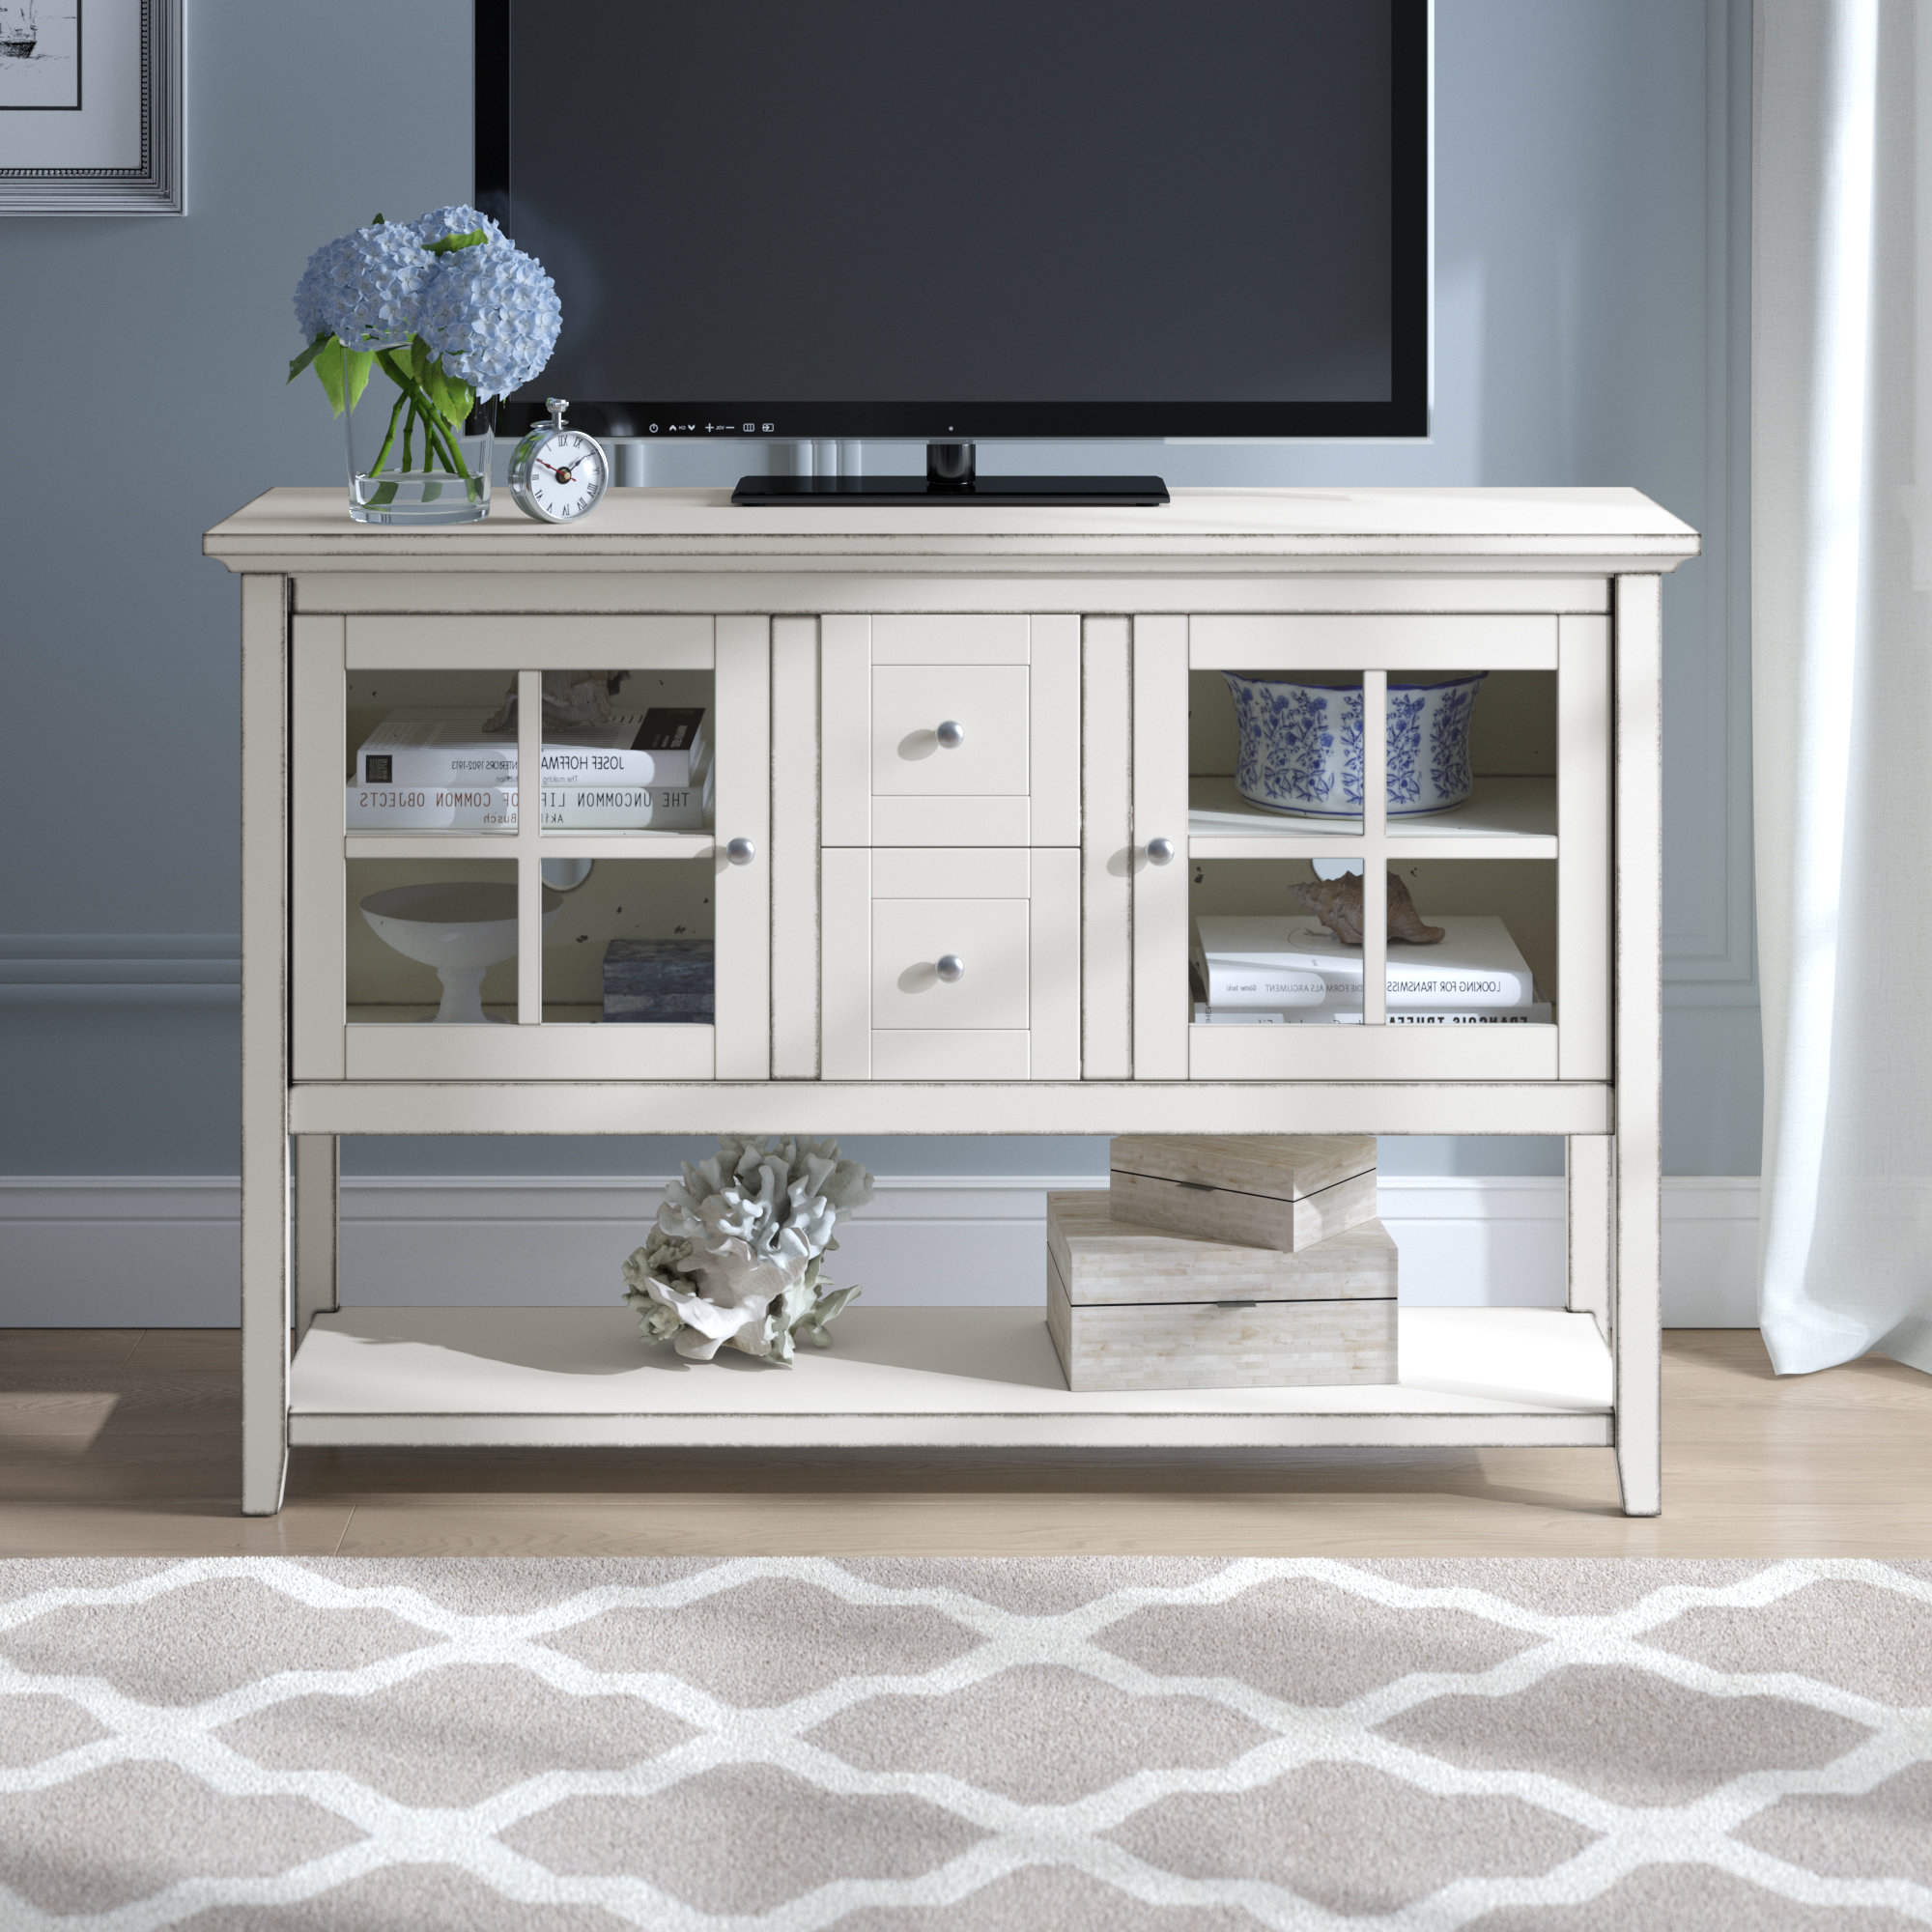 72 Inch Tv Stand | Wayfair Within Kenzie 72 Inch Open Display Tv Stands (View 2 of 20)